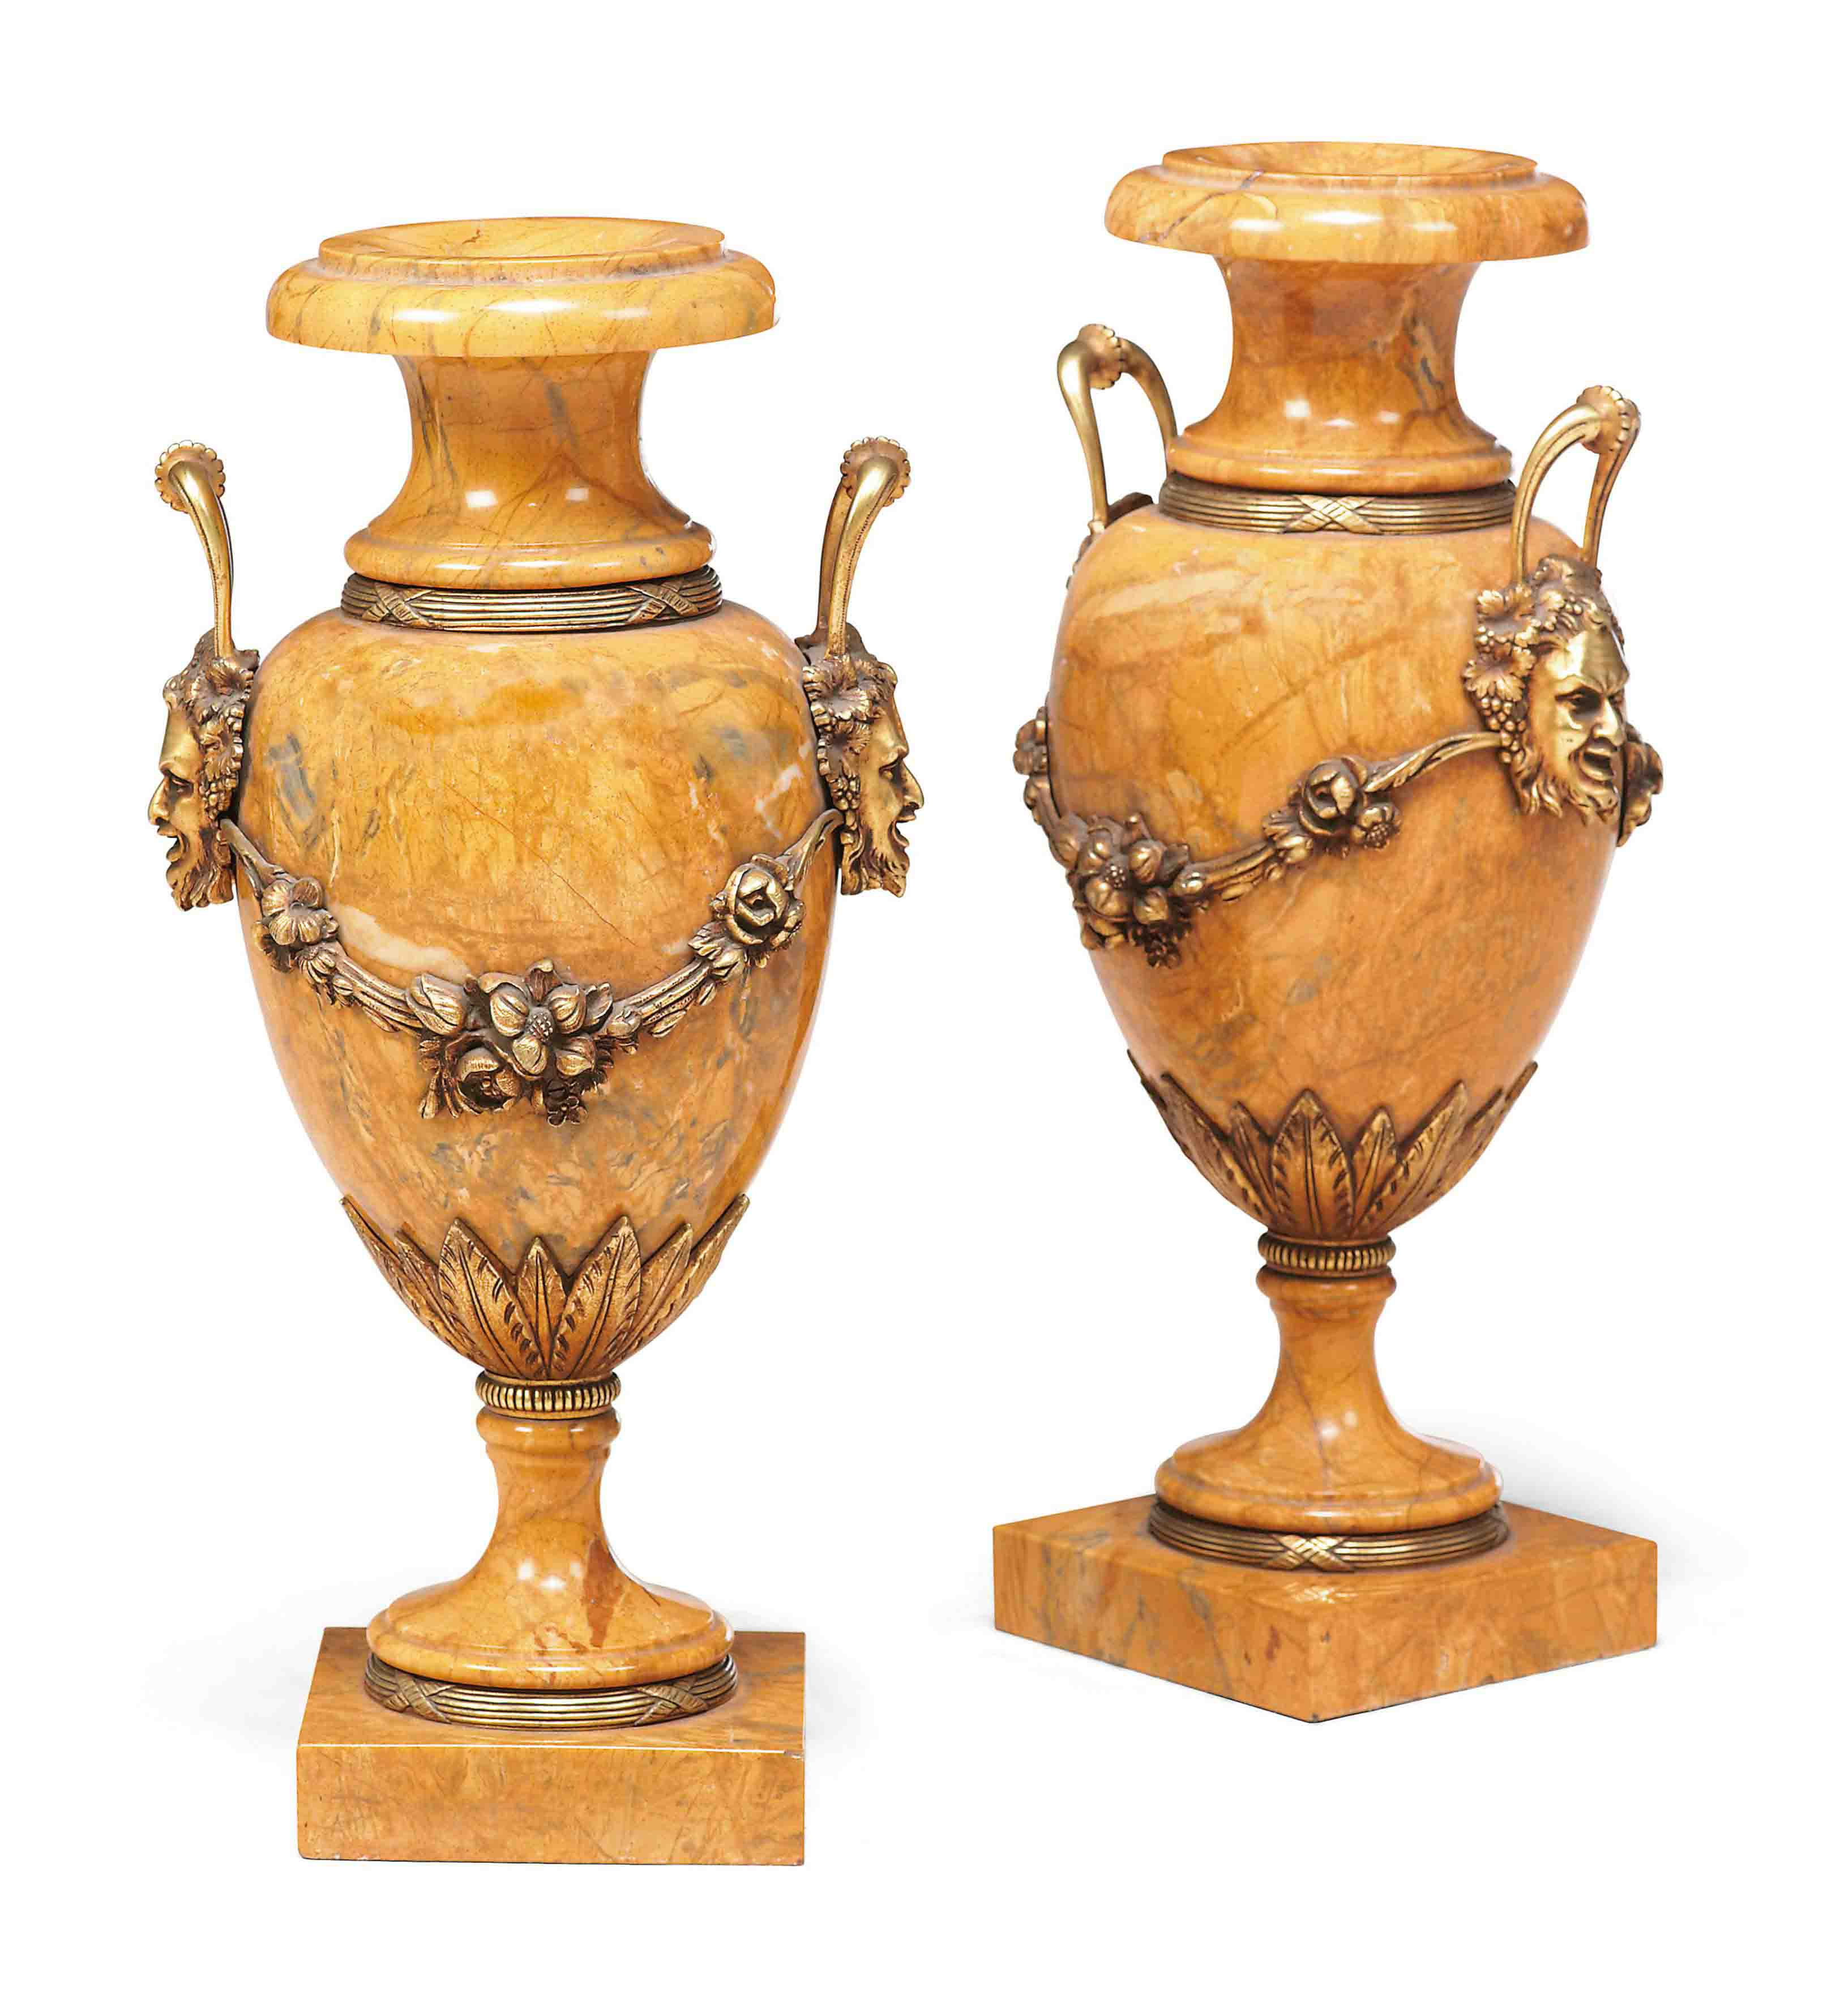 A PAIR OF CONTINENTAL YELLOW MARBLE AND GILT-BRONZE MOUNTED VASES